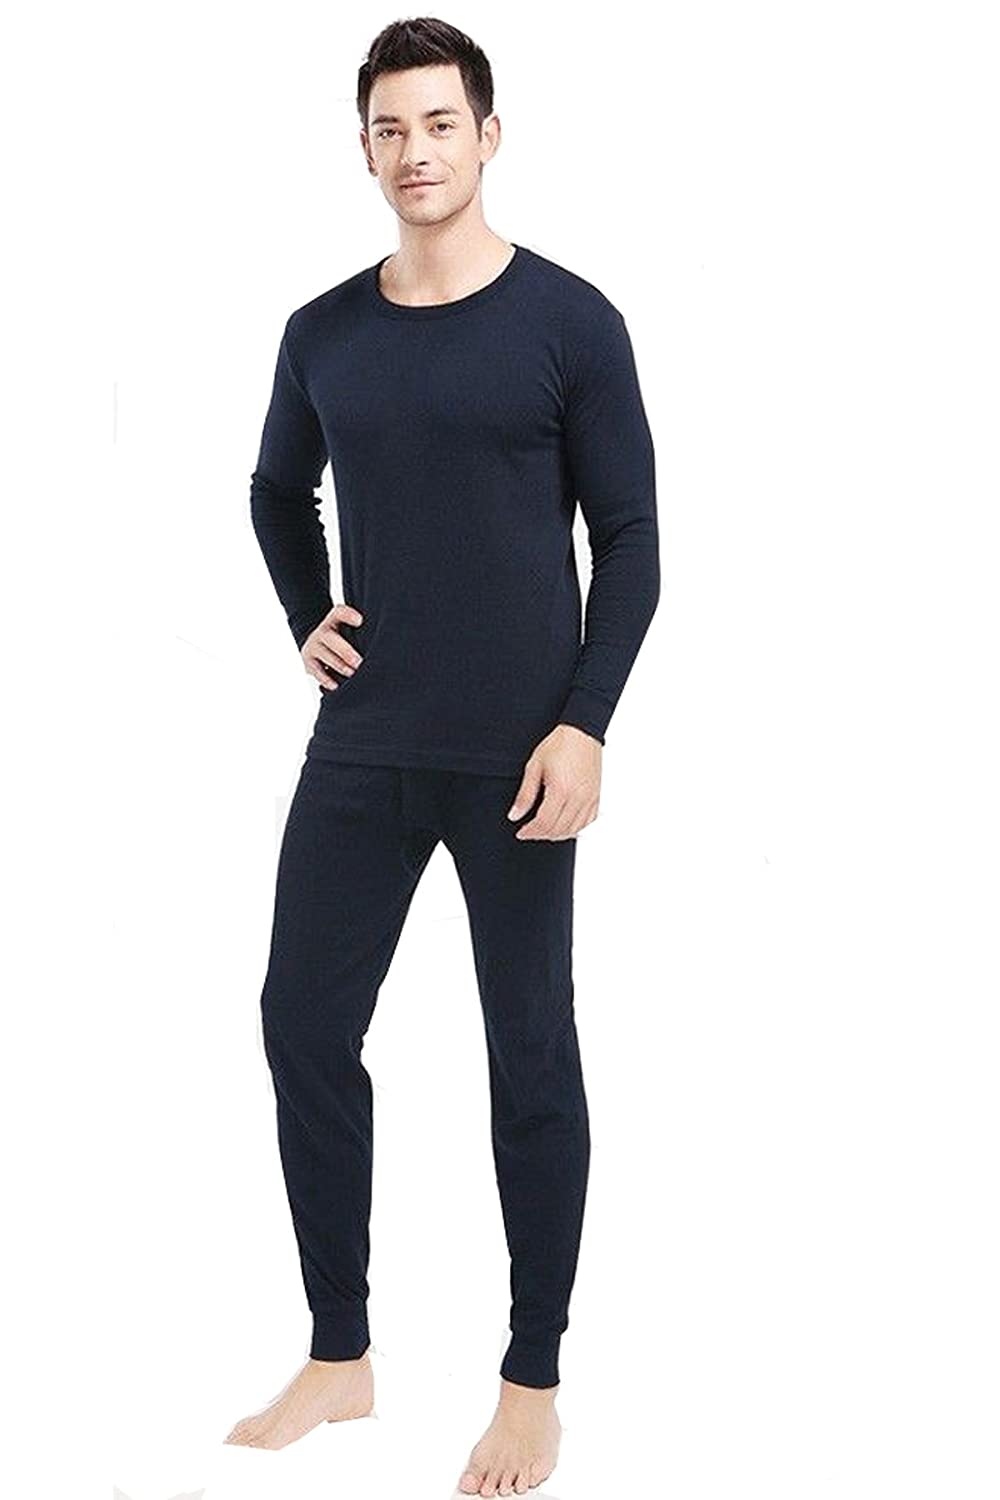 Men's 2 Pcs Thermal 100% Pure Cotton(240 Gsm) Long Sleeve Top & John Set